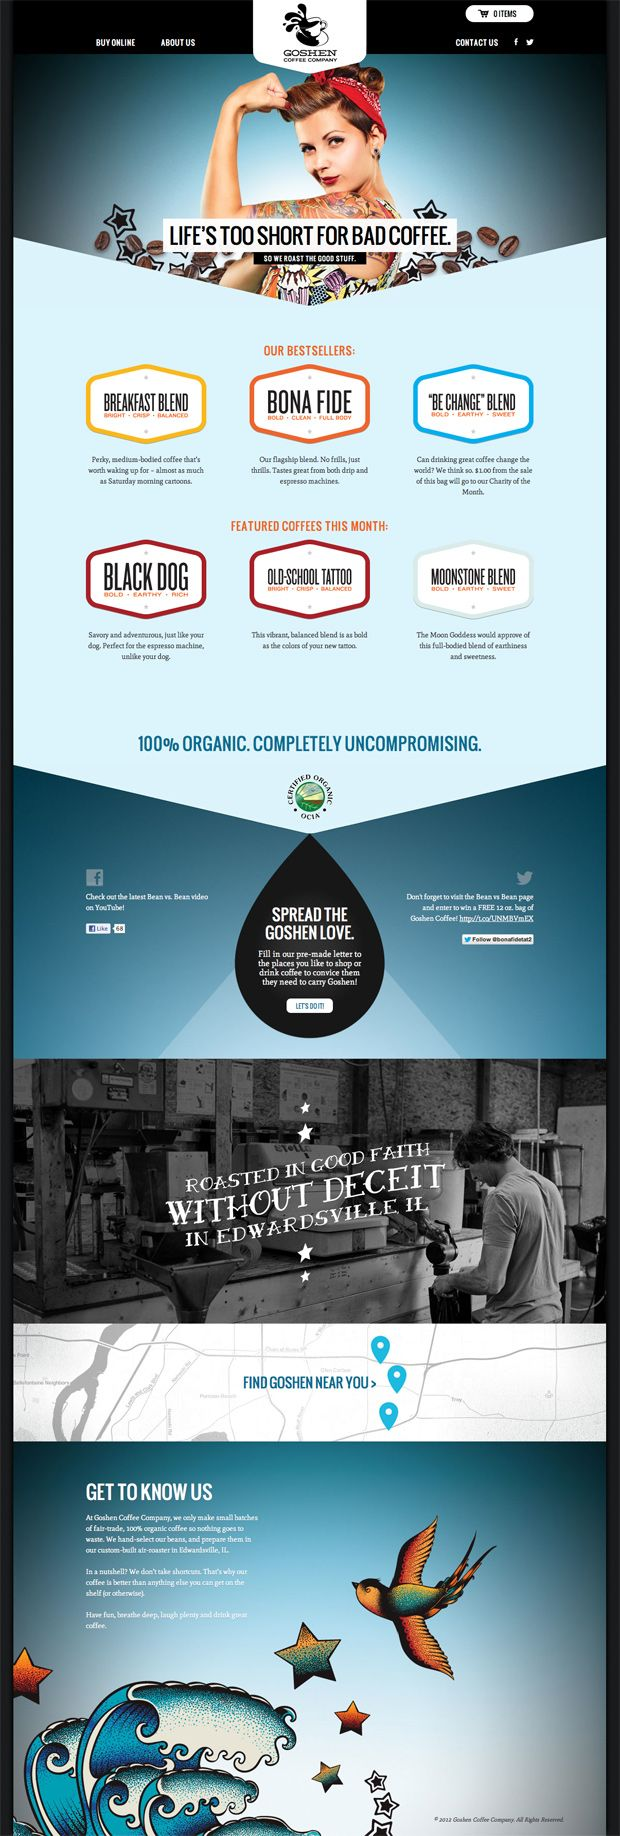 Goshen Coffee website design, Atomic Dust